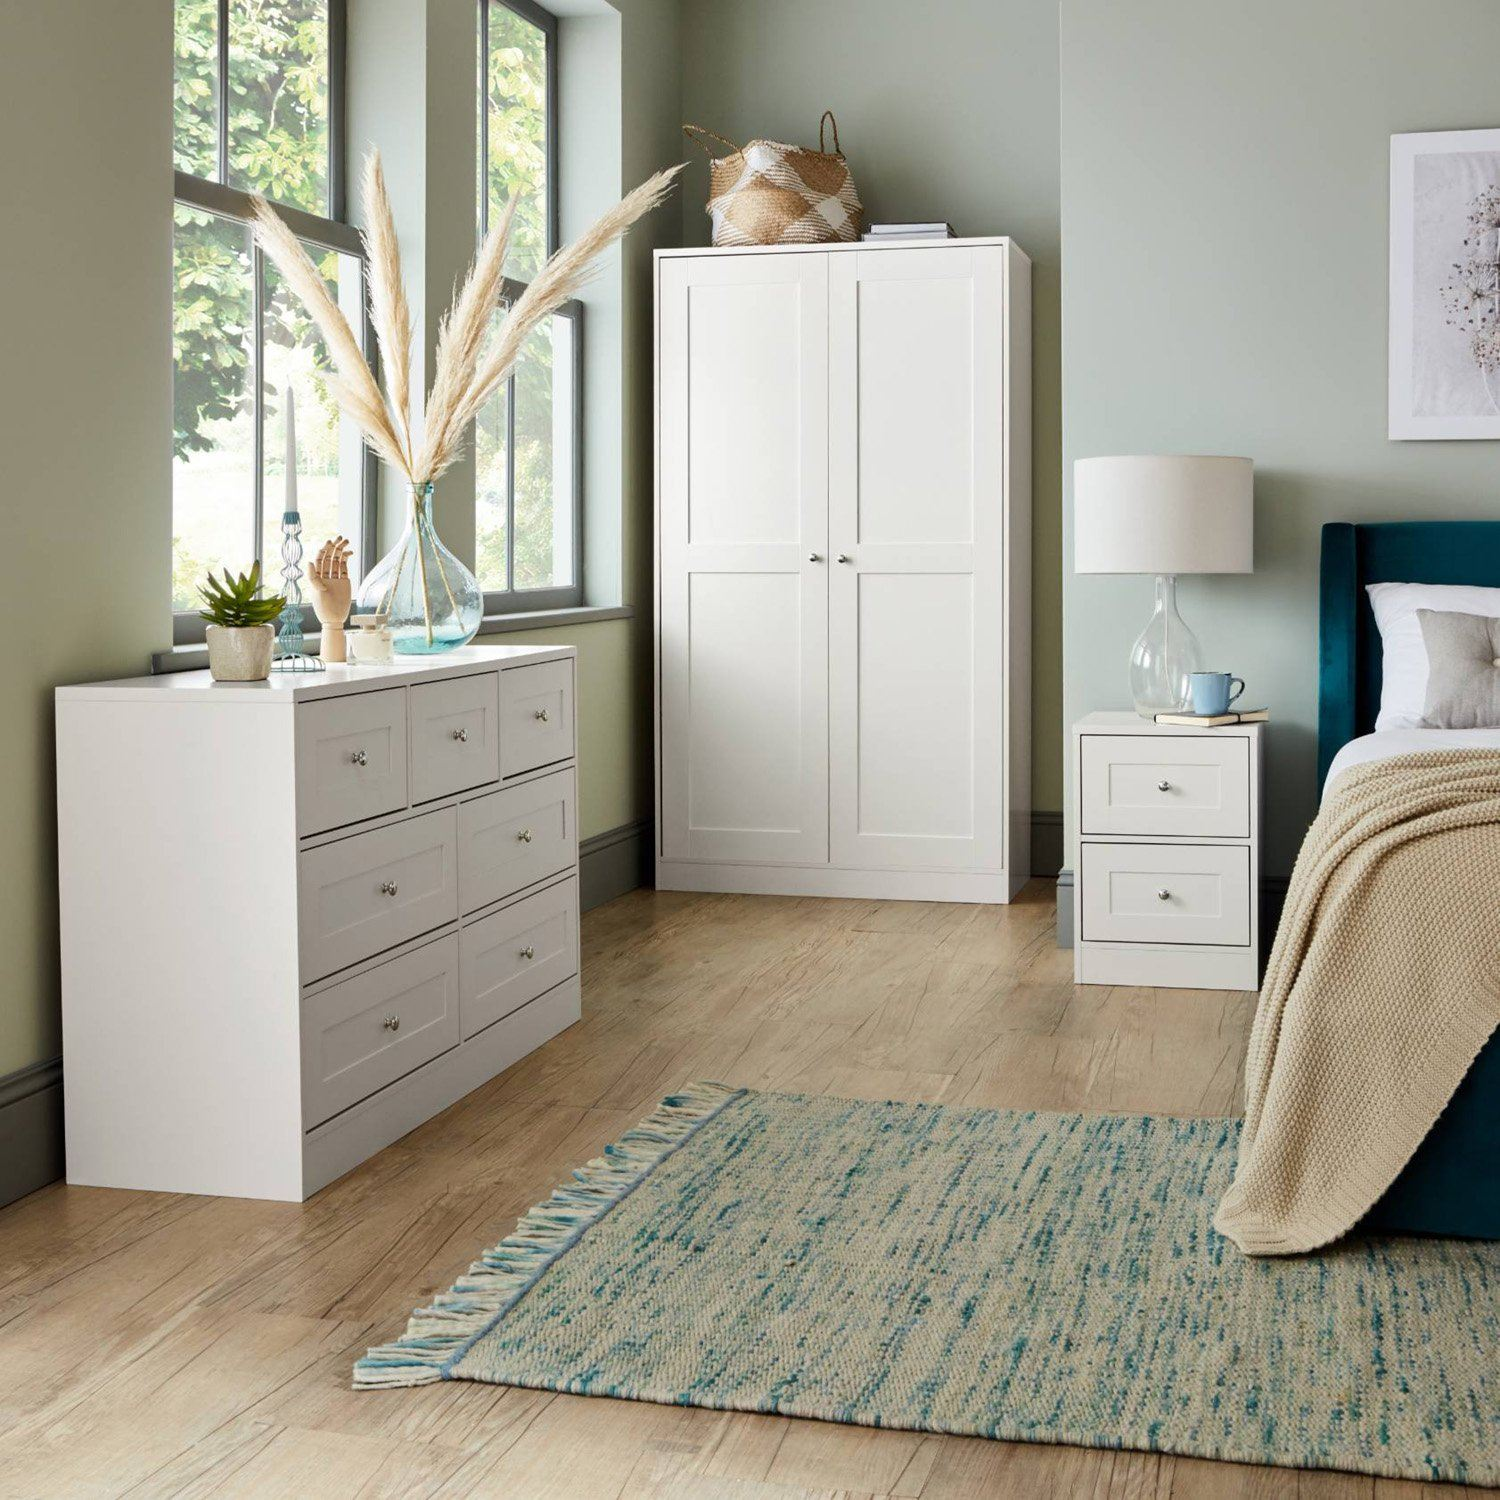 Stevie Shaker Style Bedroom Furniture Set in White - Laura James